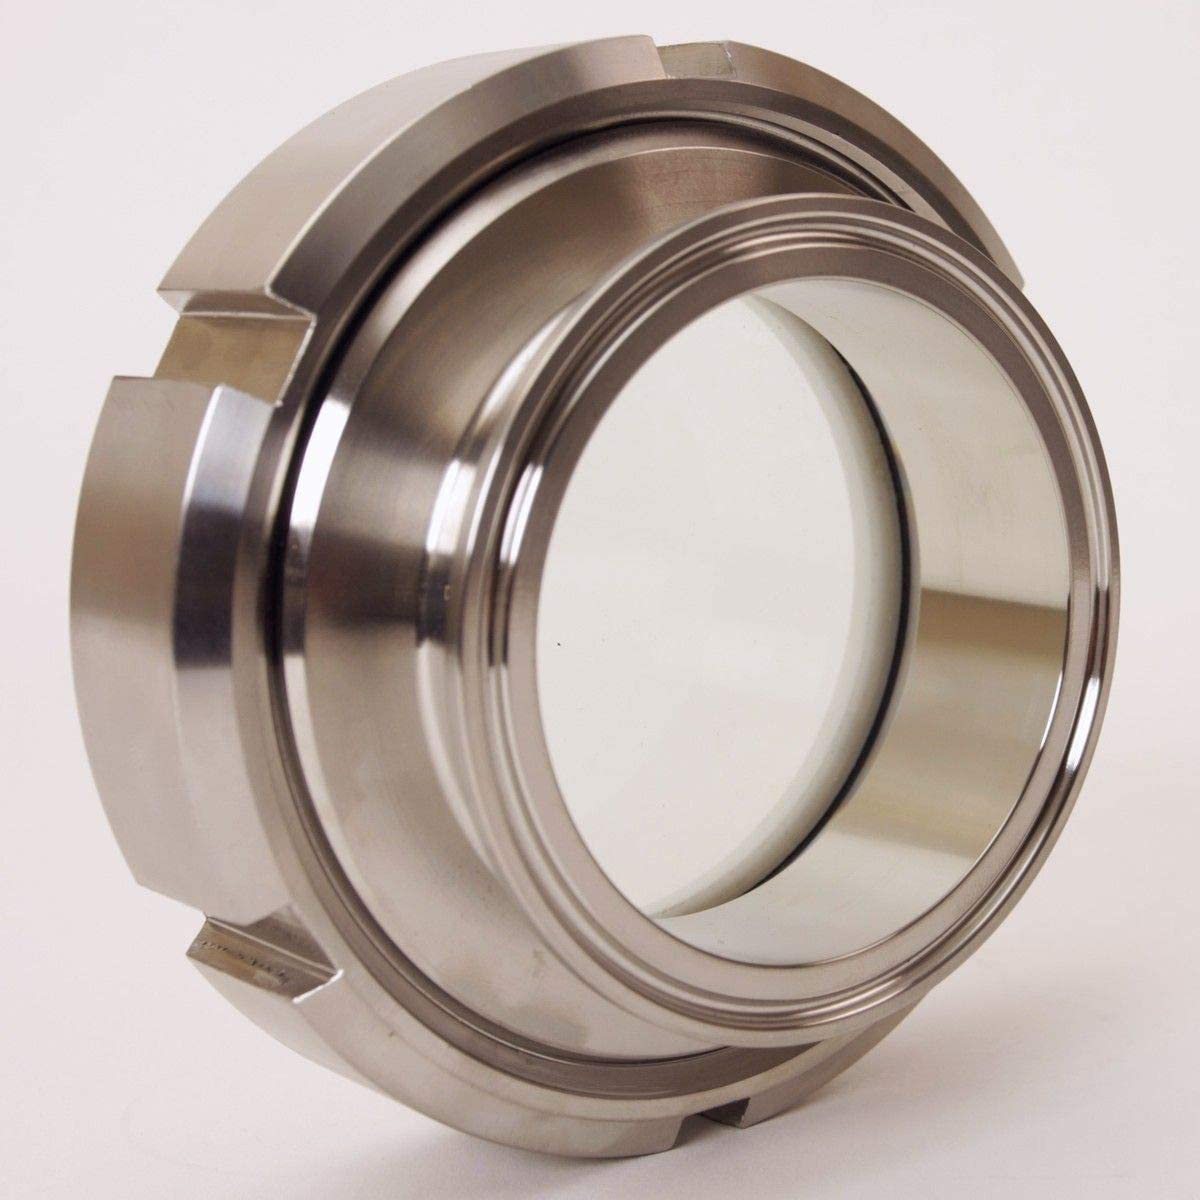 Stainless Steel SS304 // FKM//PTFE Tri Clamp 4 inch Process View Glacier Tanks